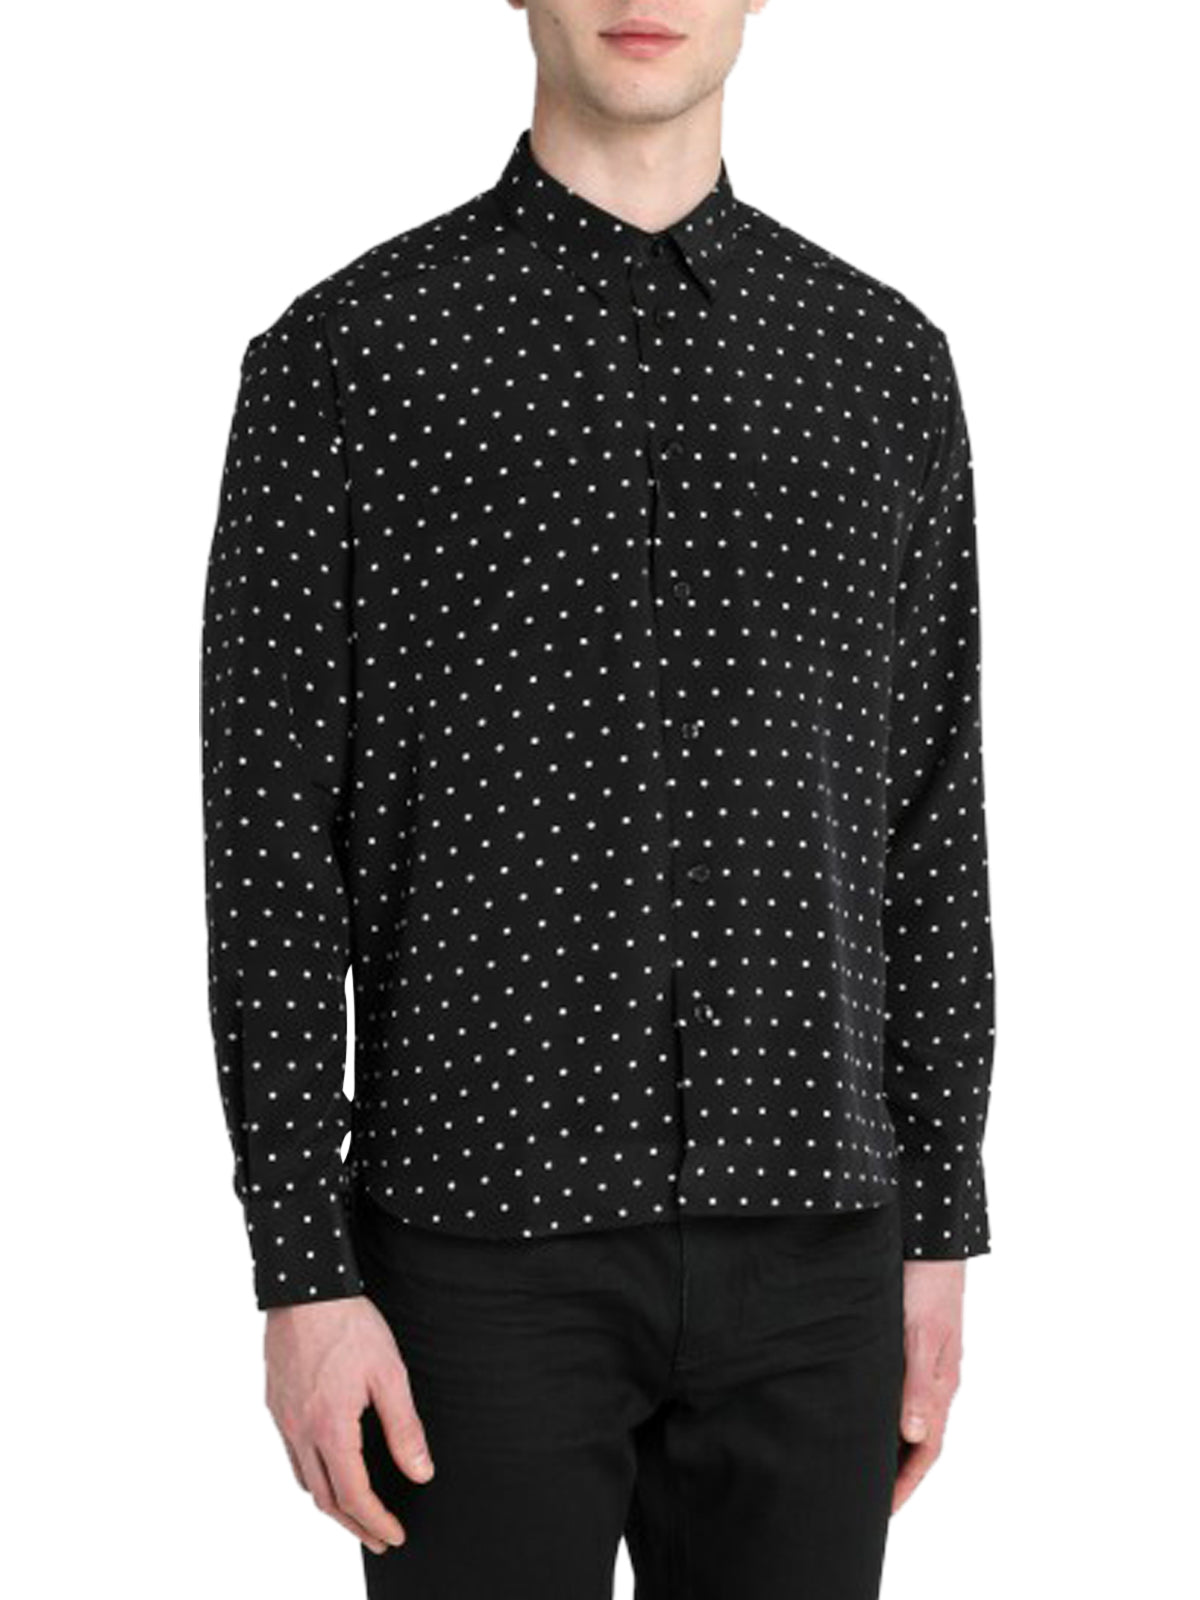 Black/white polka dot shirt